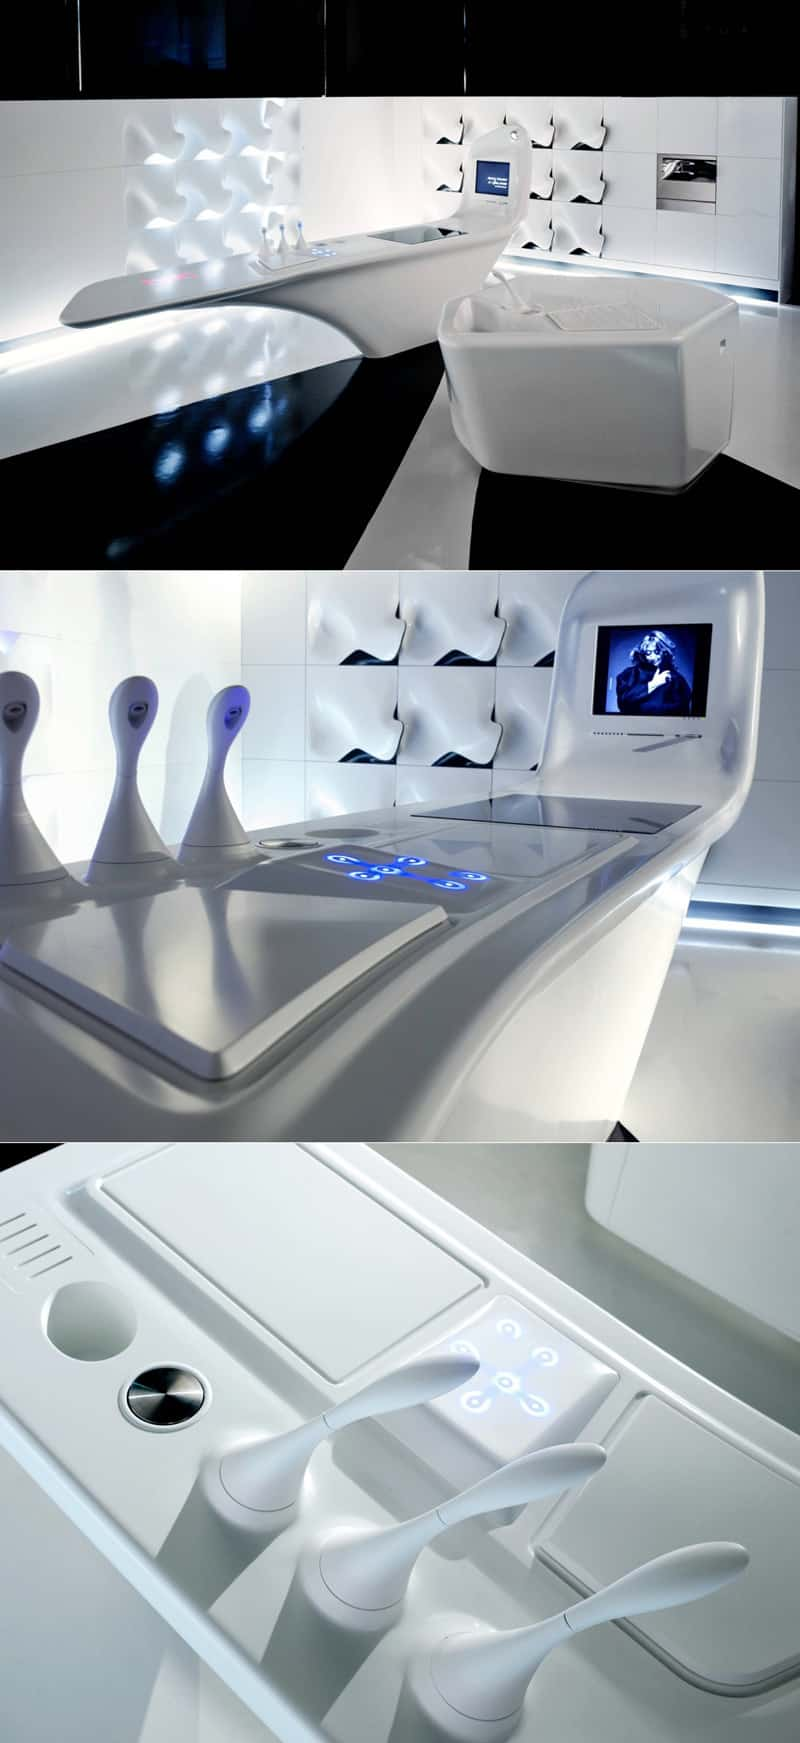 DR-Futuristic-kitchen